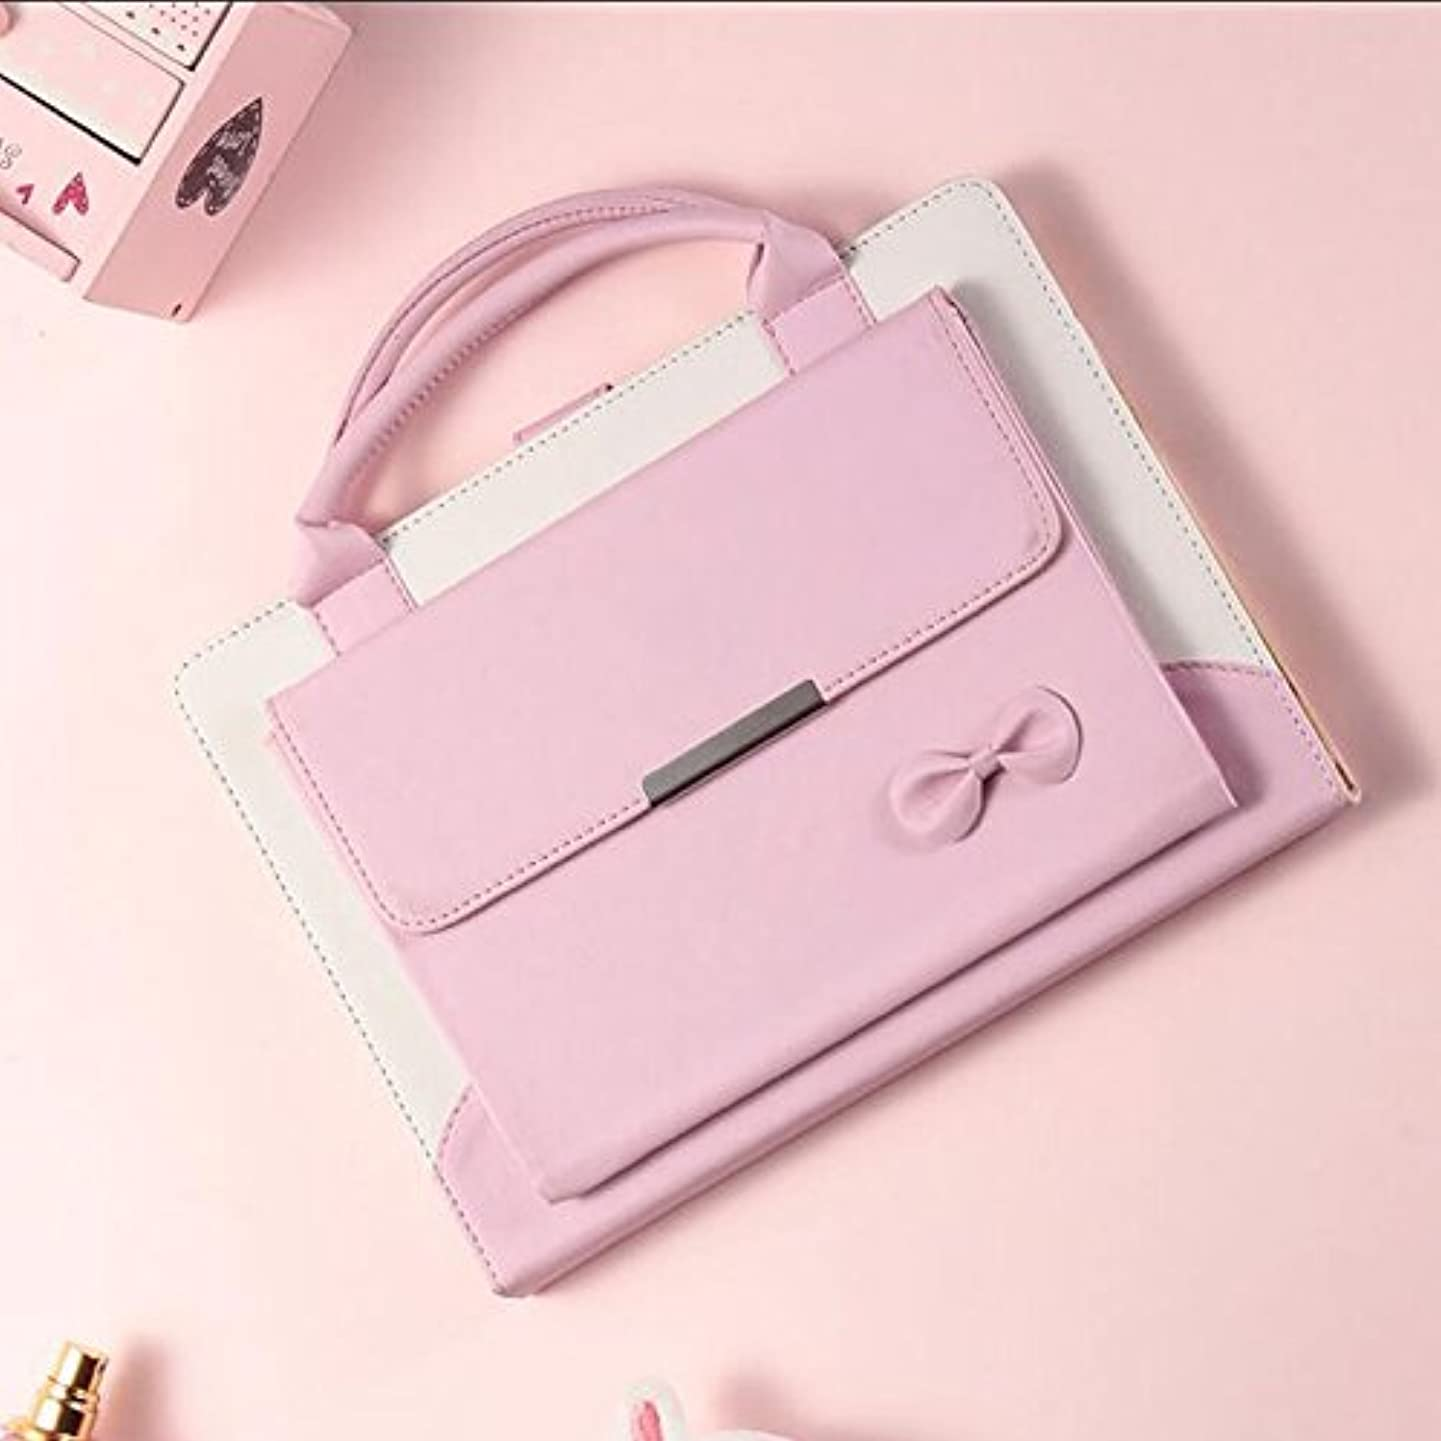 amhello Lovely Handbag Synthetic Leather Magnetic Stand Case Cover with Auto Sleep/Wake Function for iPad Air 1st/Air 2/Pro 9.7/New iPad 9.7 2017/iPad 9.7 2018 - Baby Pink